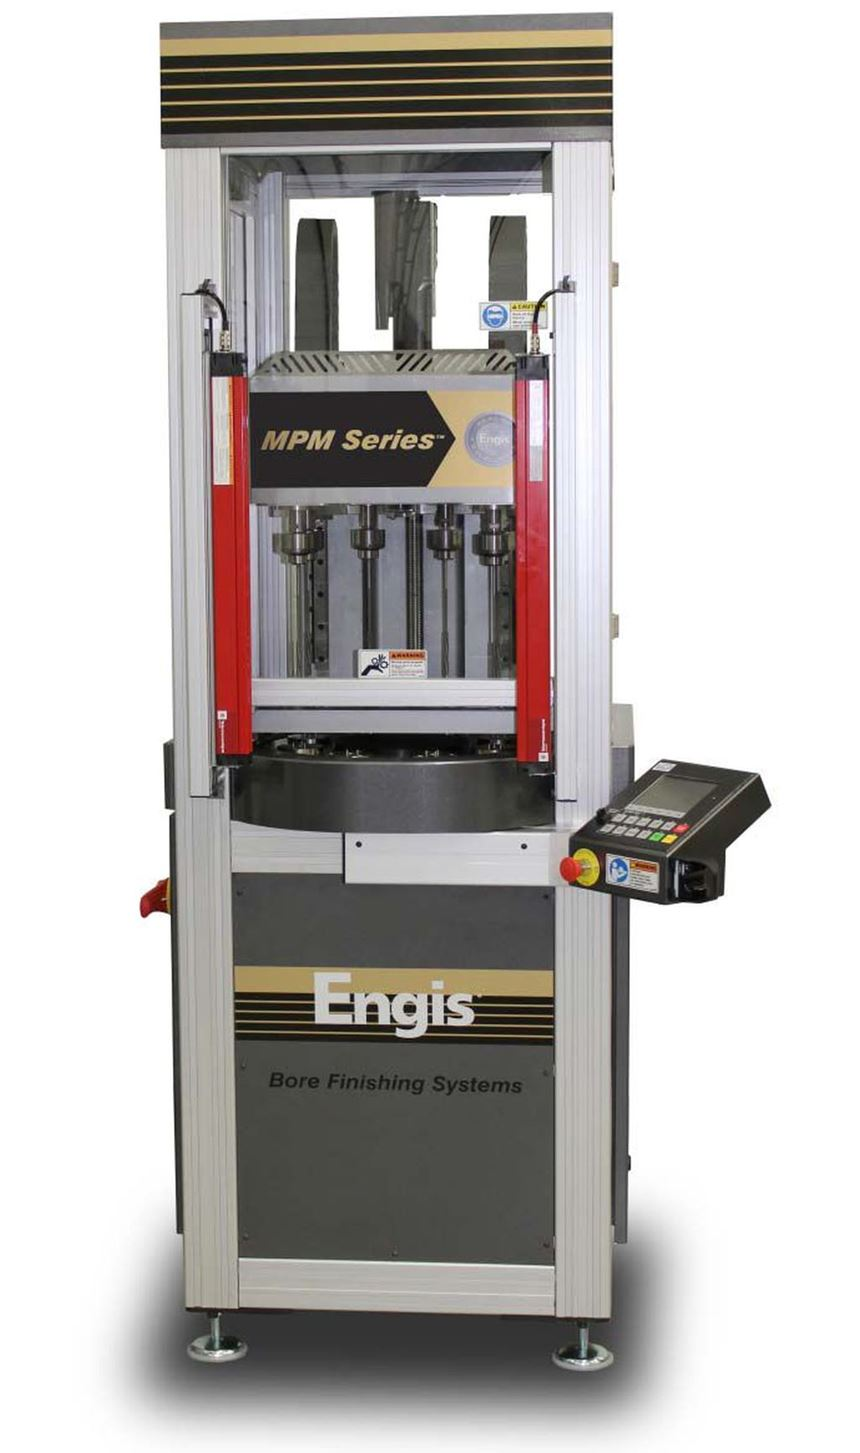 Engis MPM-series bore finishing machine